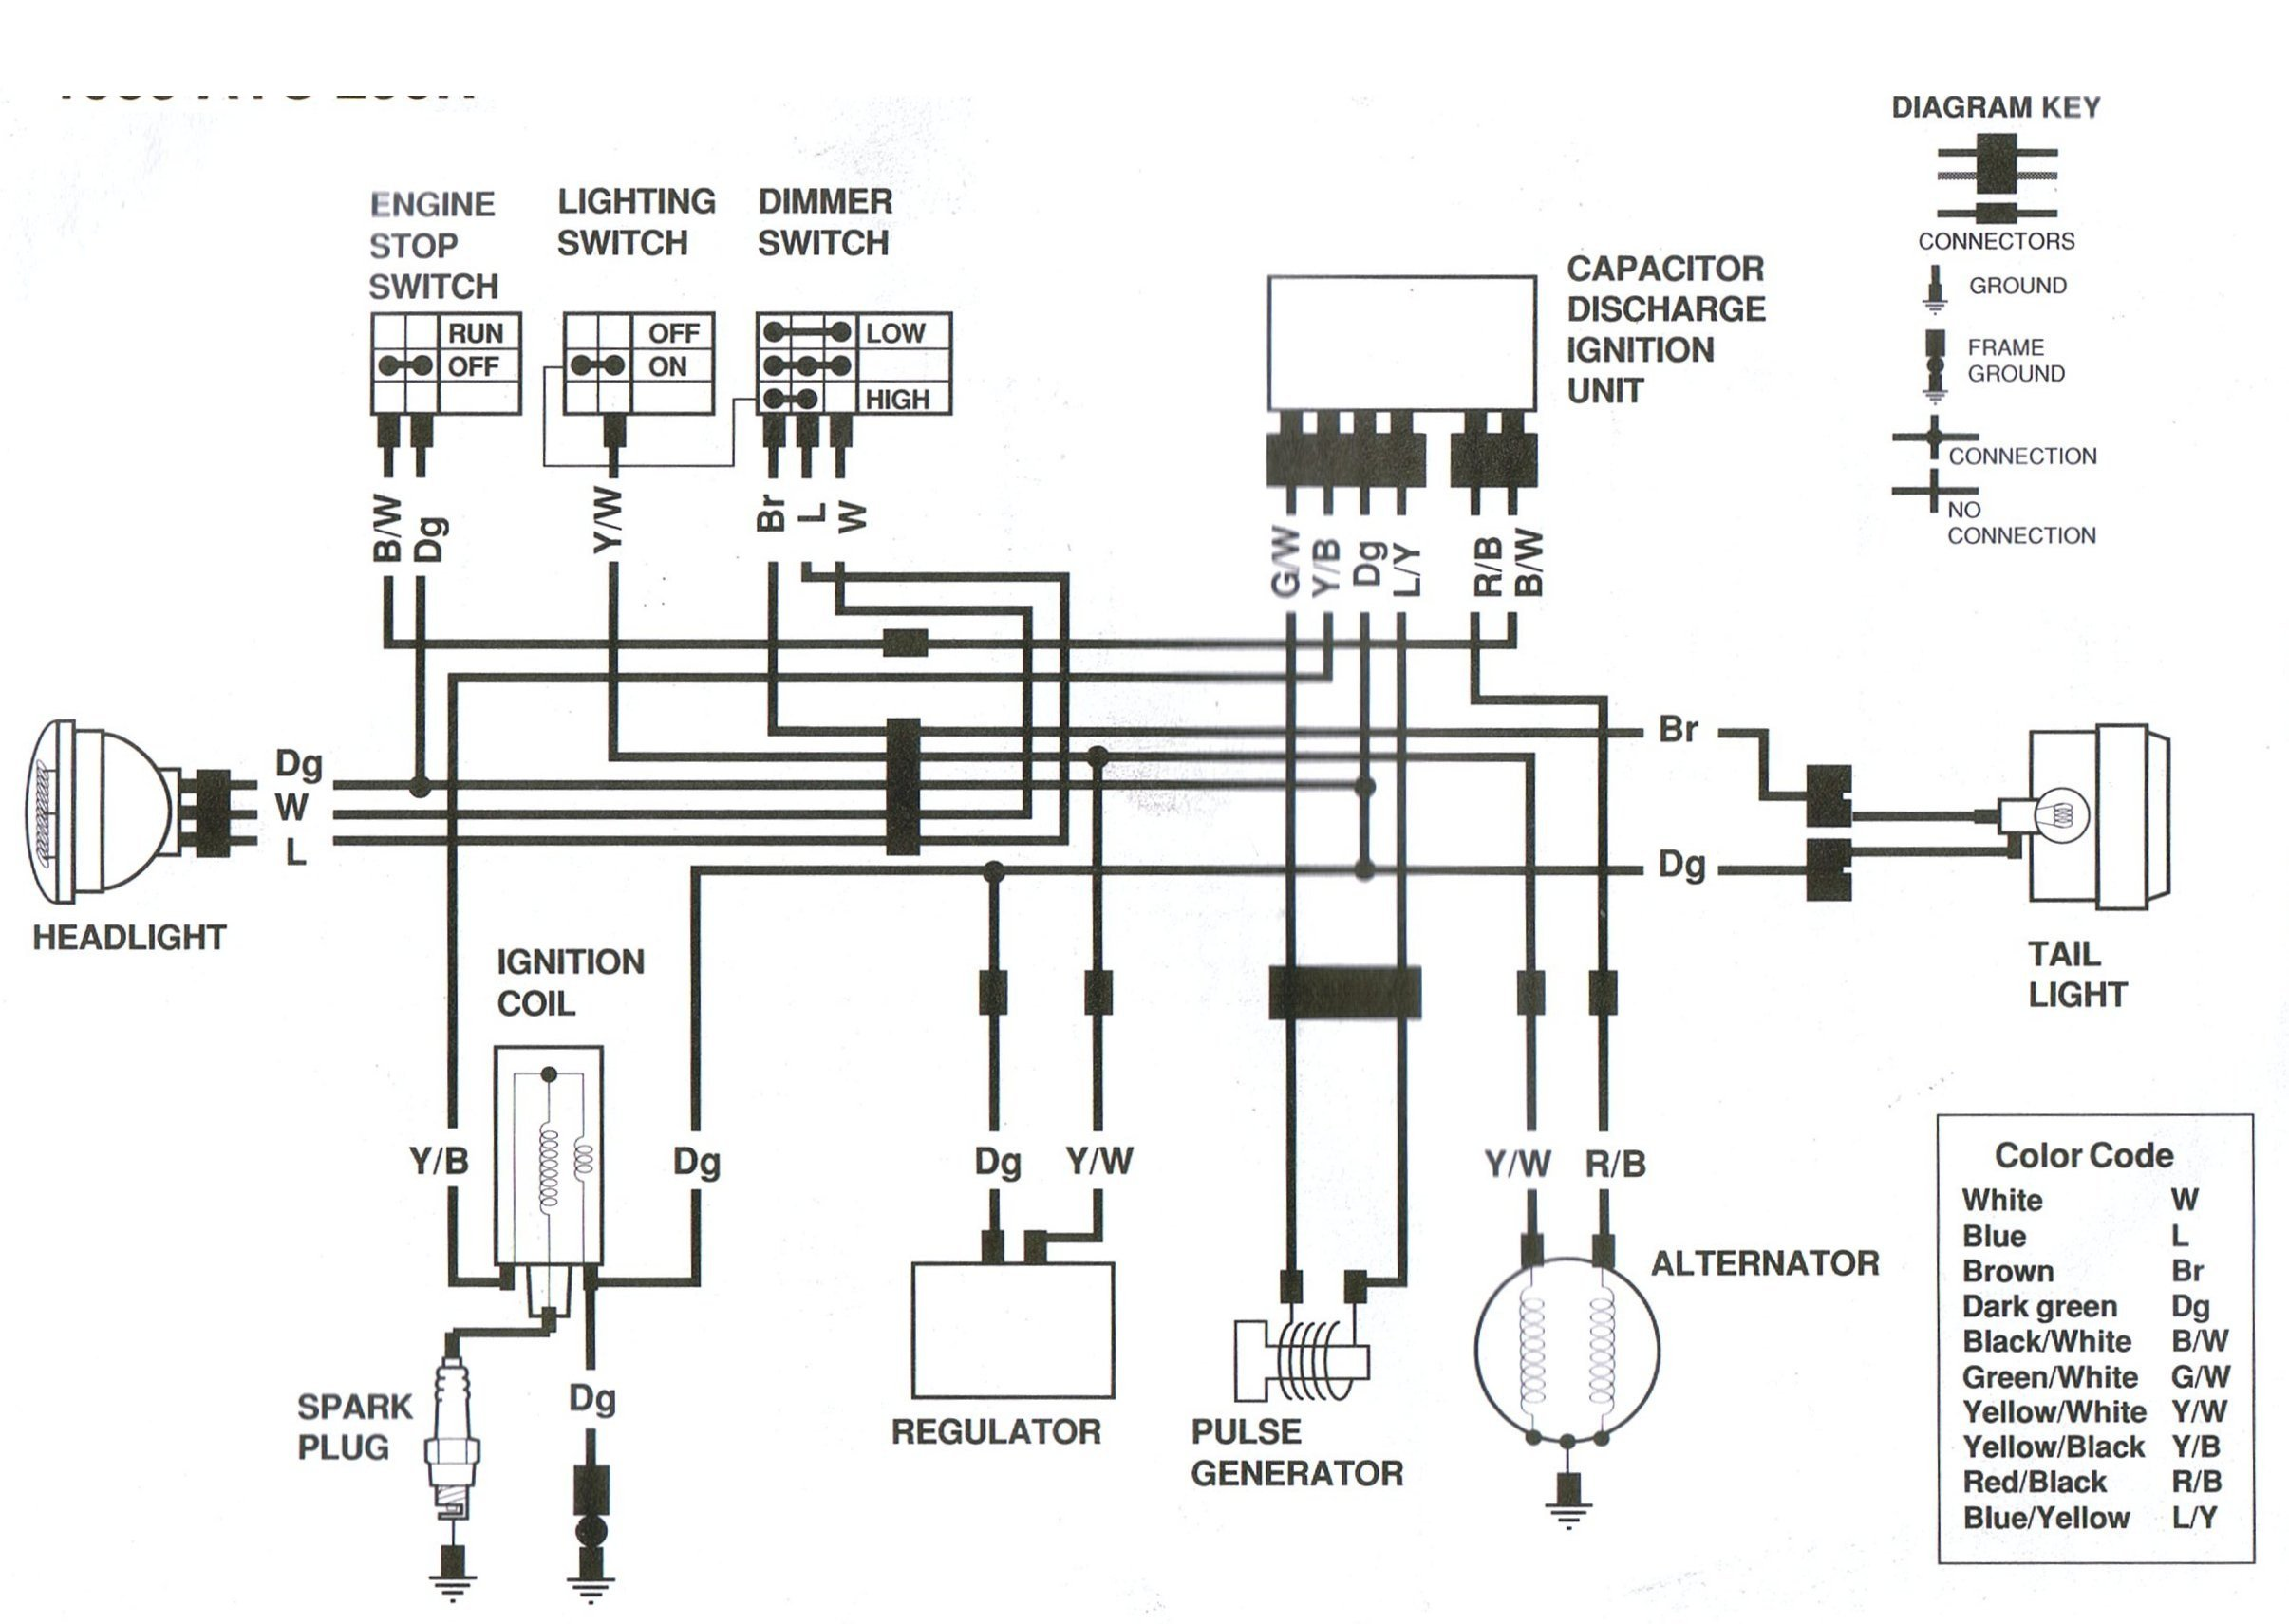 wiring diagram of kawasaki 1986 1300 voyager